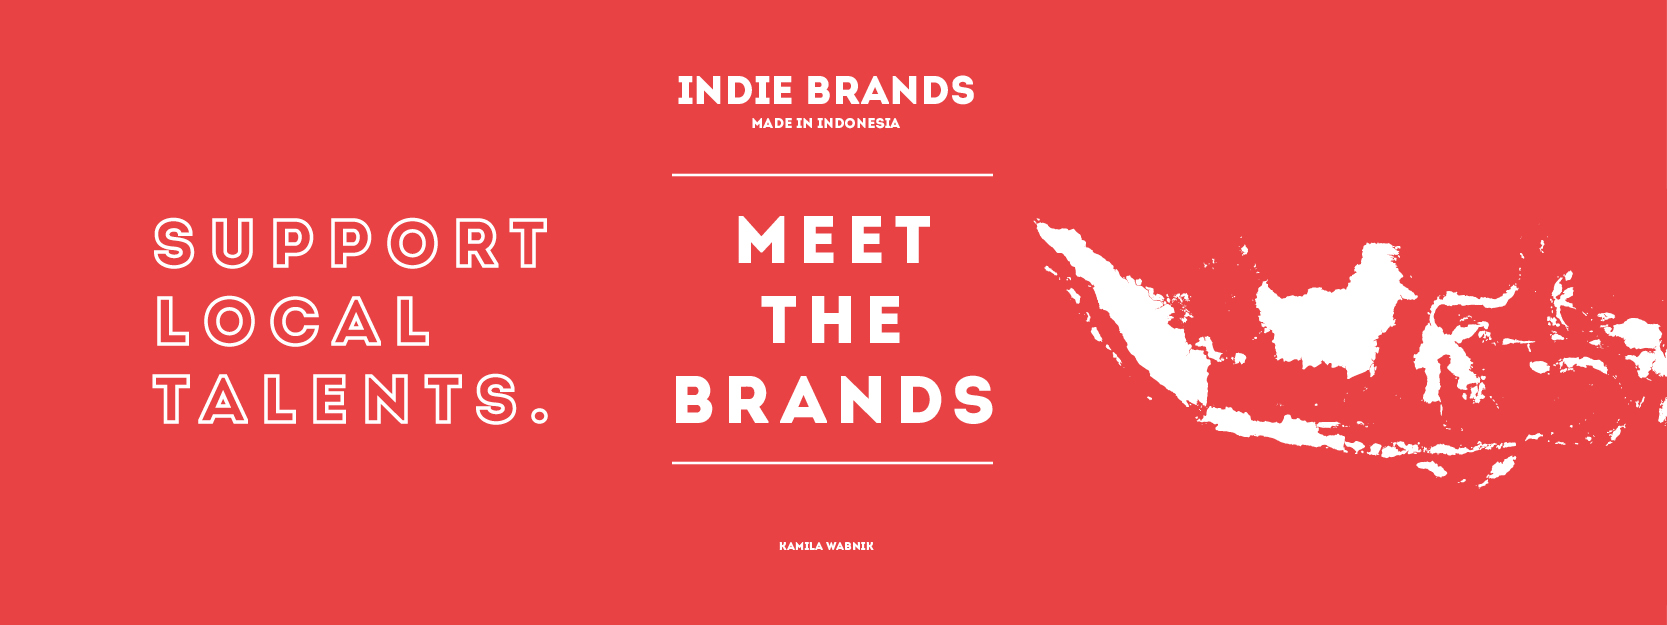 Indie Brands Made In Indonesia – MEET THE BRANDS